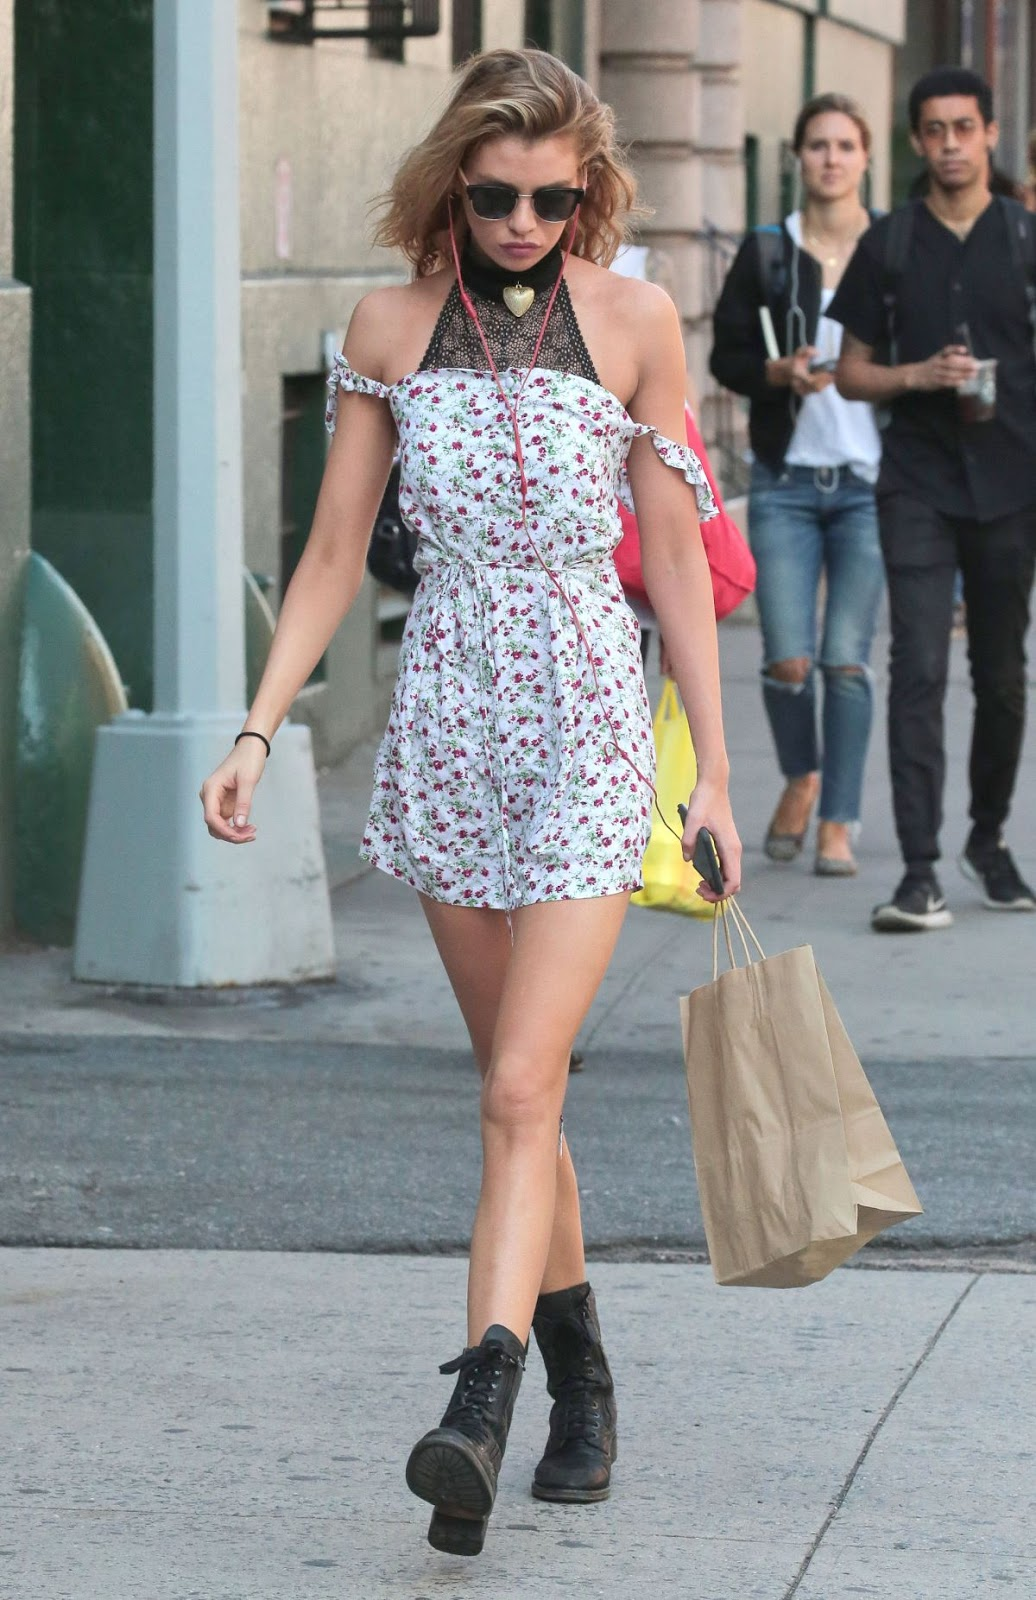 HQ Photos of Stella Maxwell Out And About In New York